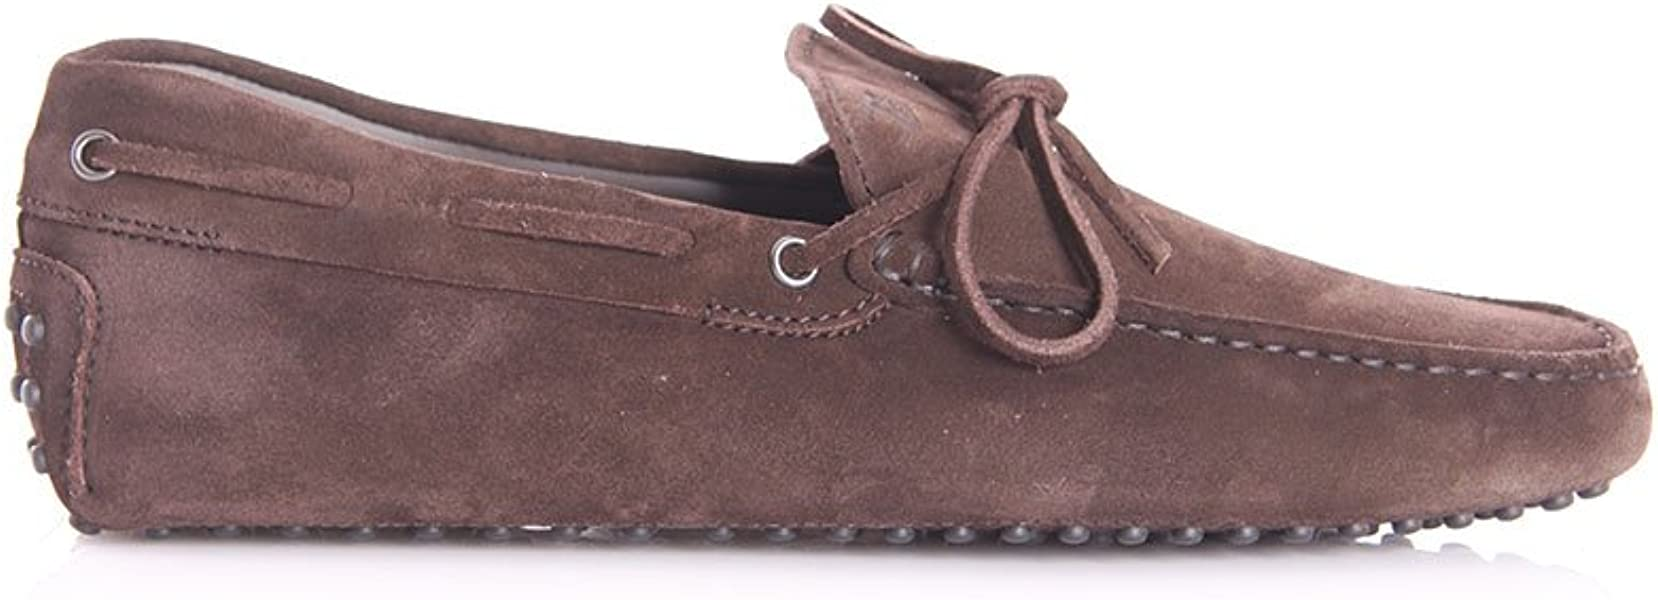 1c360354 Tod's Gommino Driving Shoes in Suede, Mens, Size: 6.: Amazon.co.uk ...